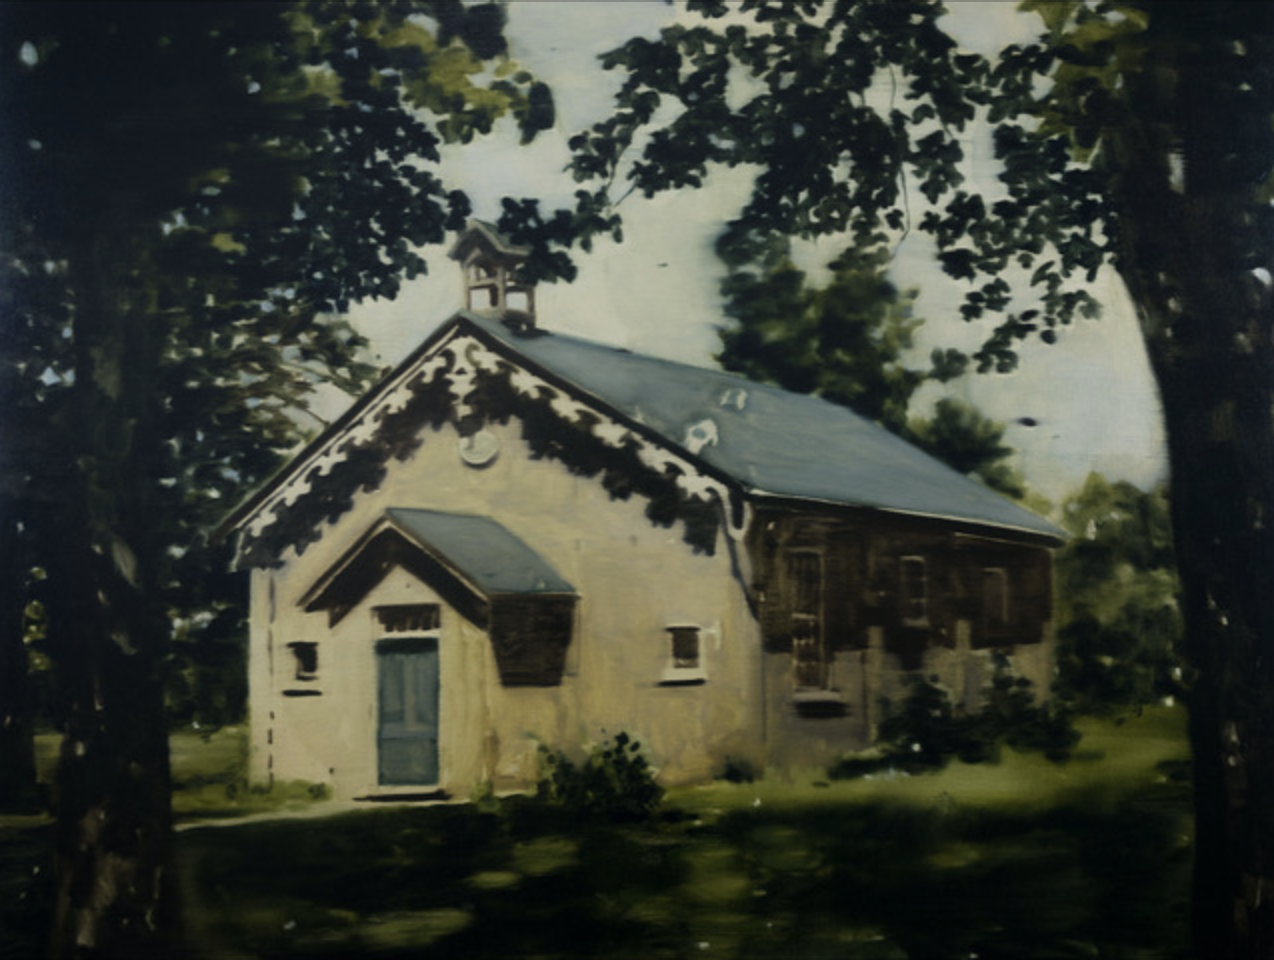 DANI McKENZIE  Schoolhouse , 2019 oil on linen 76.5 x 102 cm